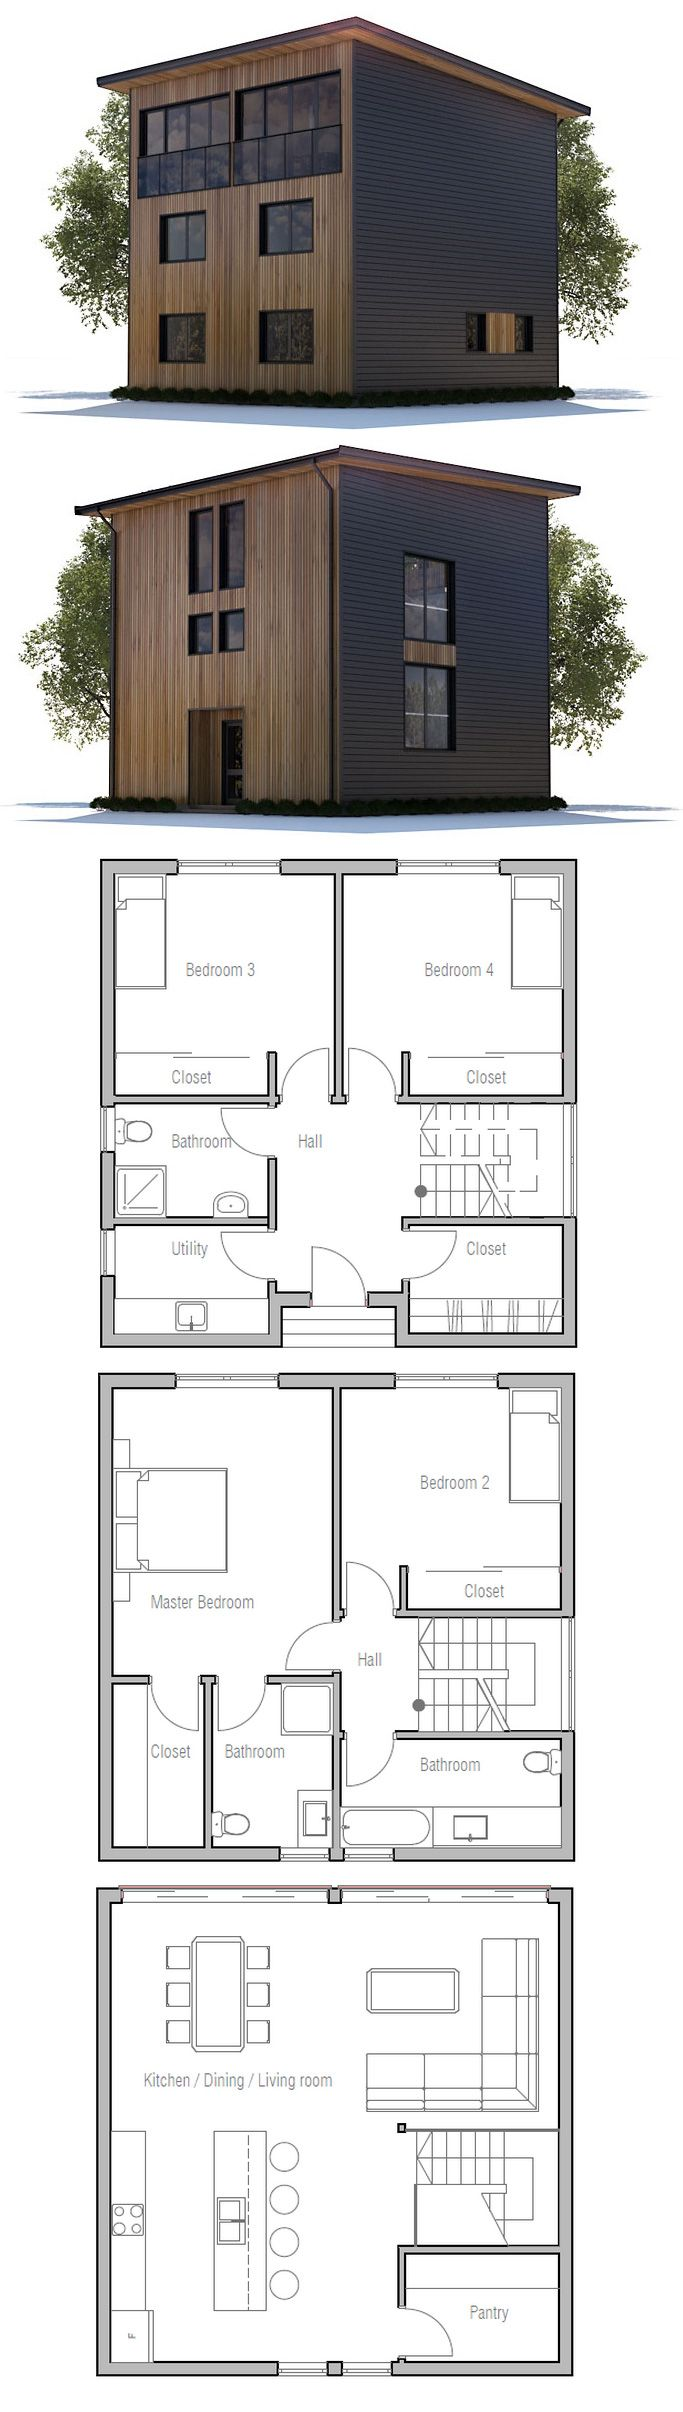 Container House - I would make the ground floor the master suite. The middle floor the living area and the top floor with 3 bedrooms and a bathroom - Who Else Wants Simple Step-By-Step Plans To Design And Build A Container Home From Scratch?